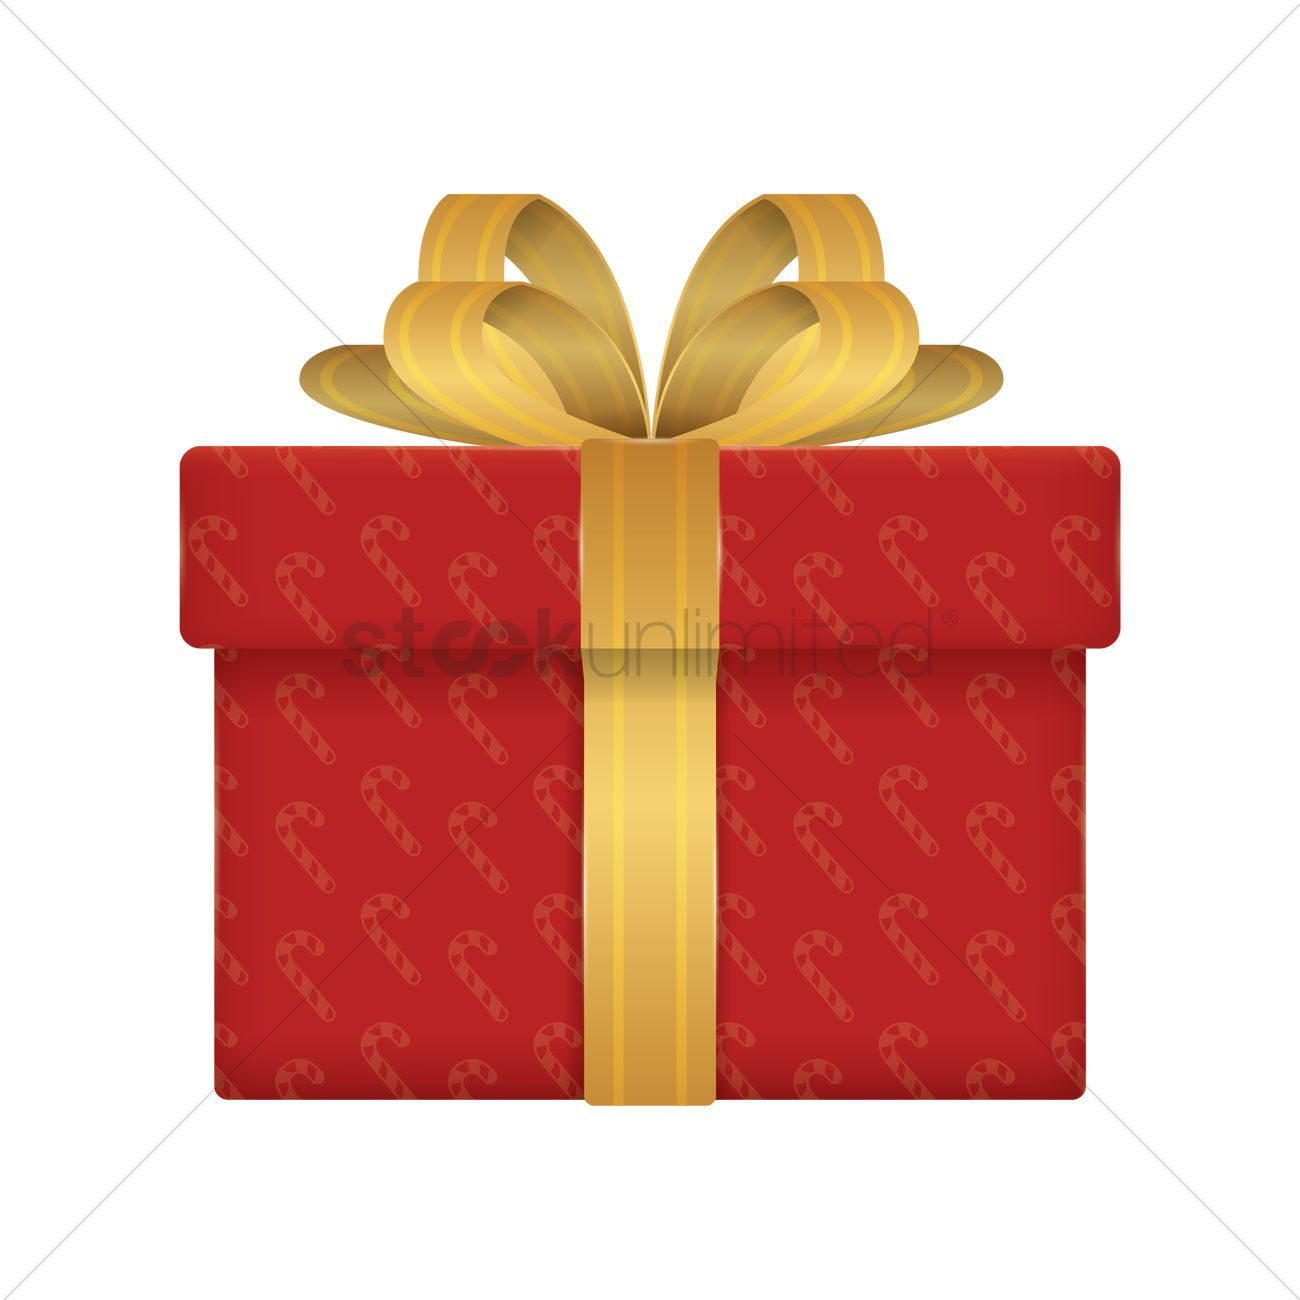 Christmas gift box Vector Image - 1934703 | StockUnlimited